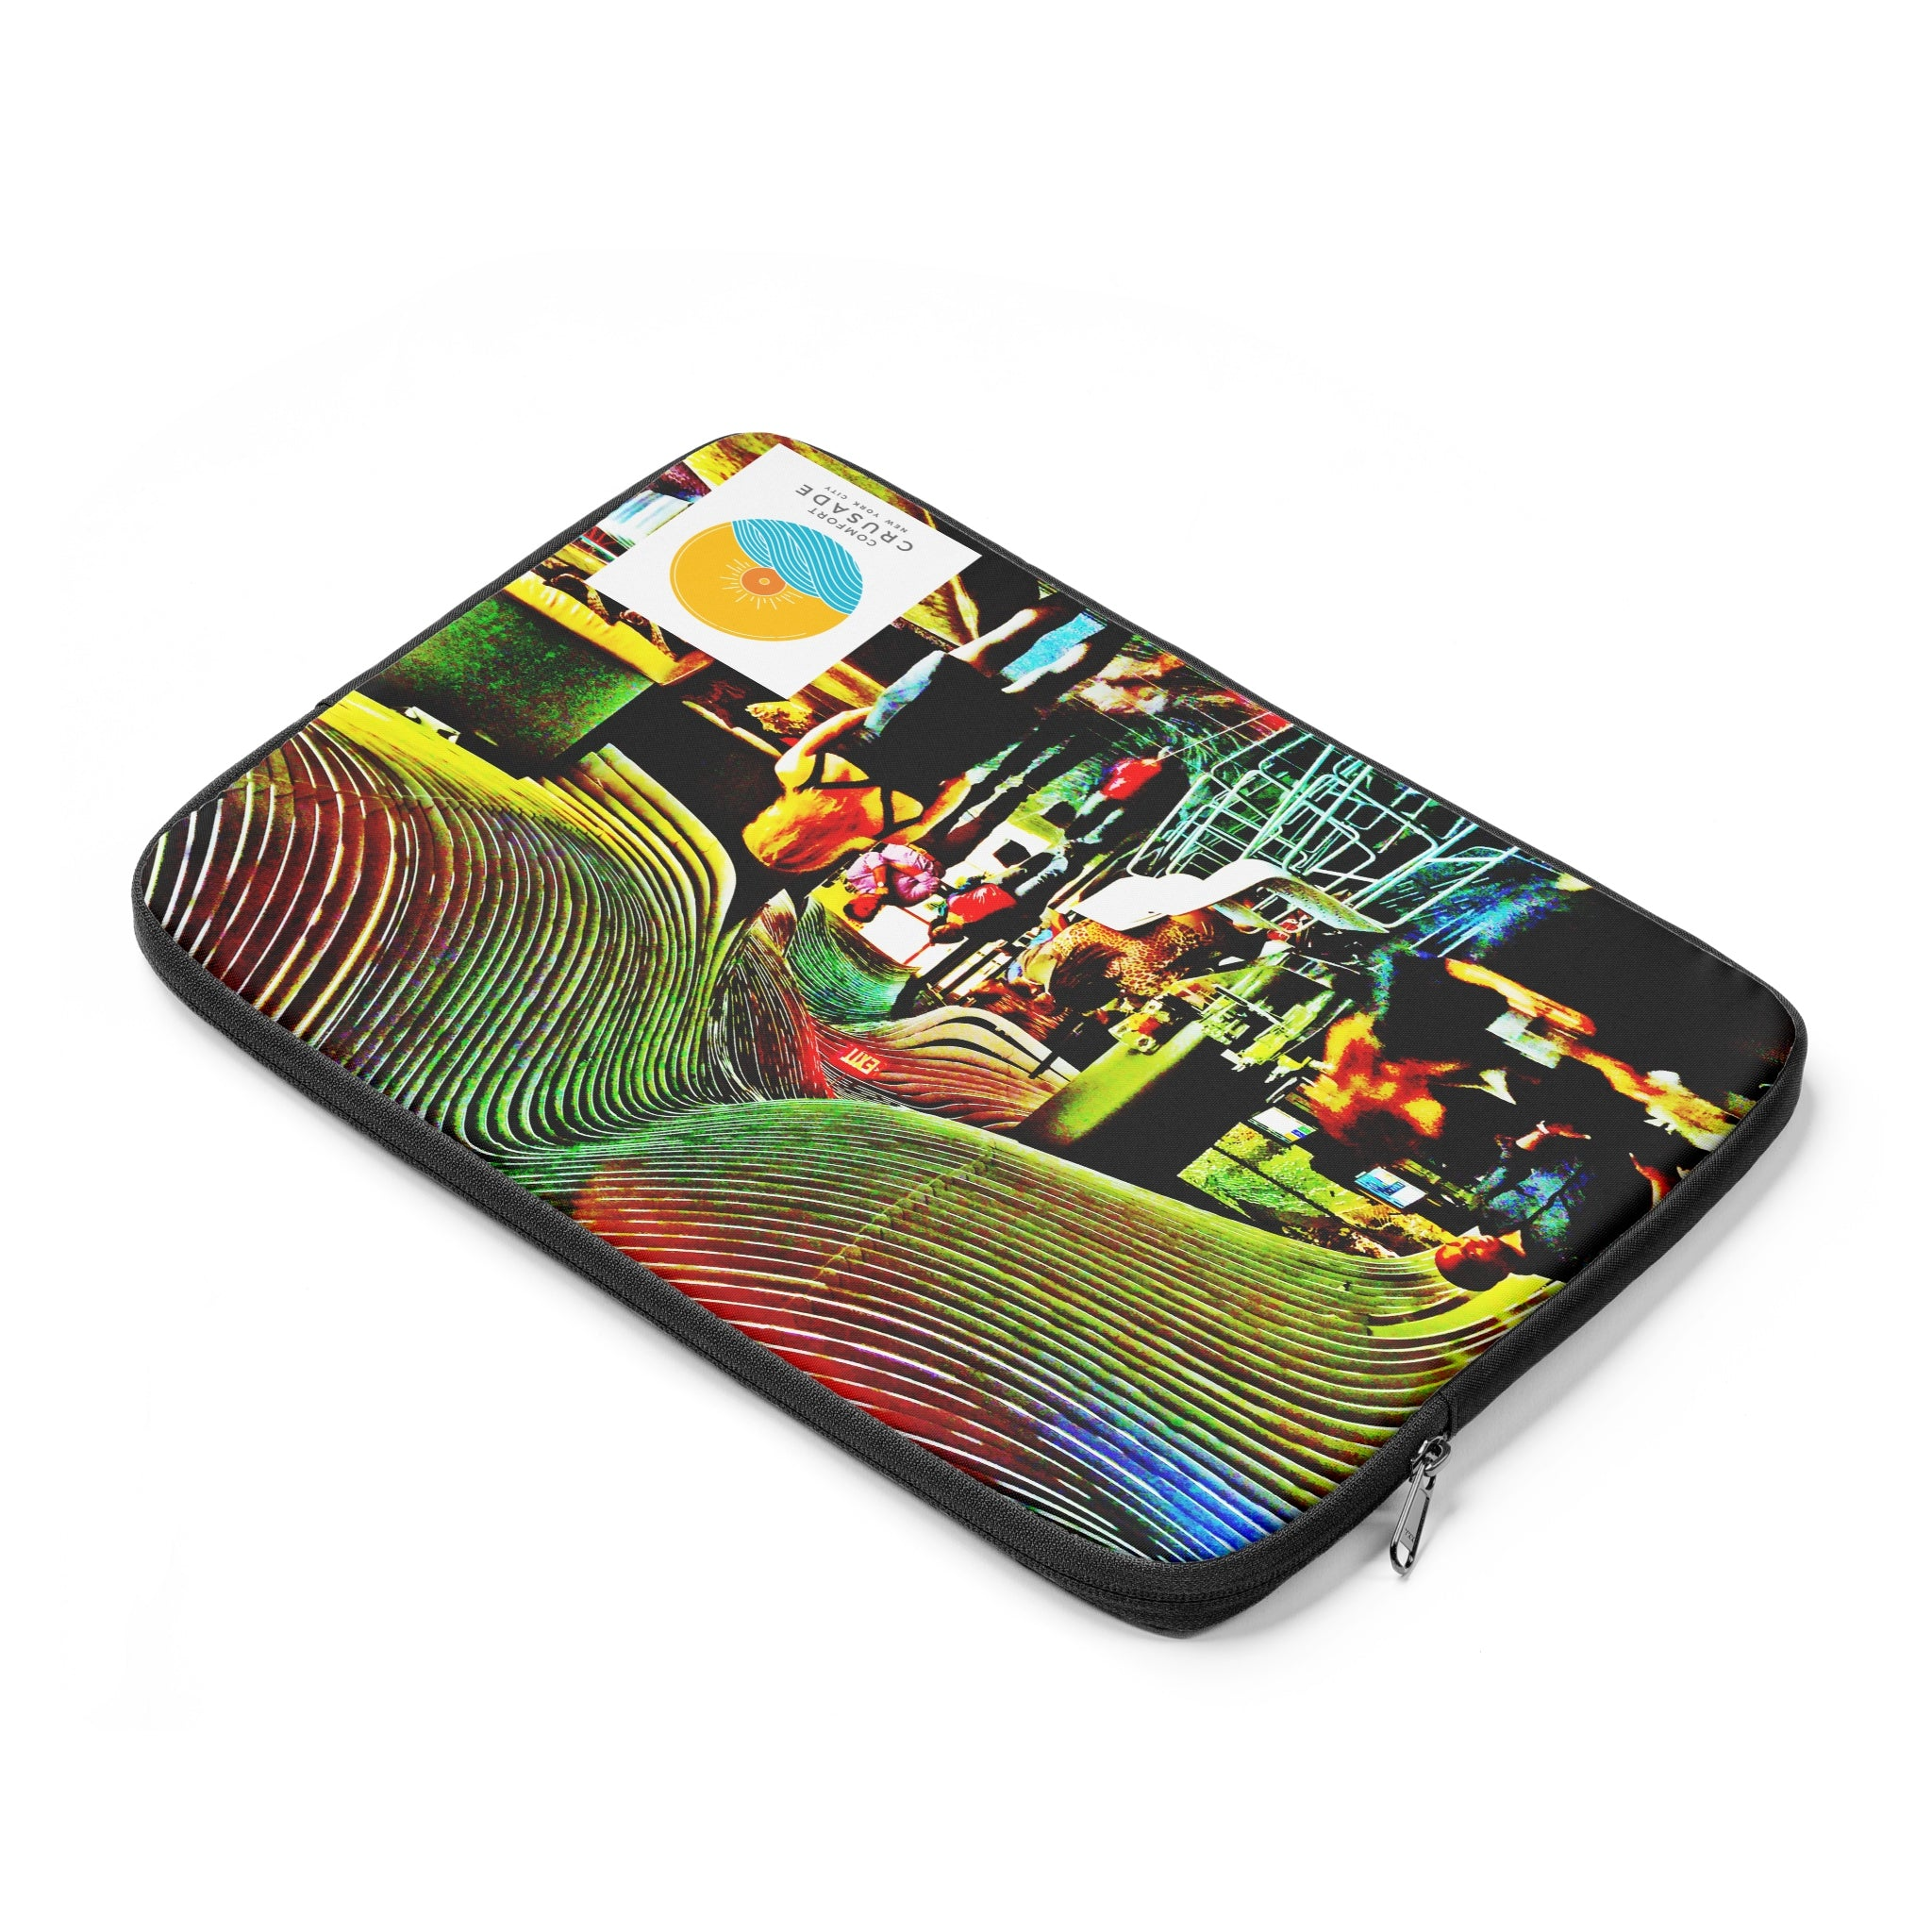 Comfort Crusade Lounge Life Laptop Sleeve - The Comfort Crusade Shopping Lounge